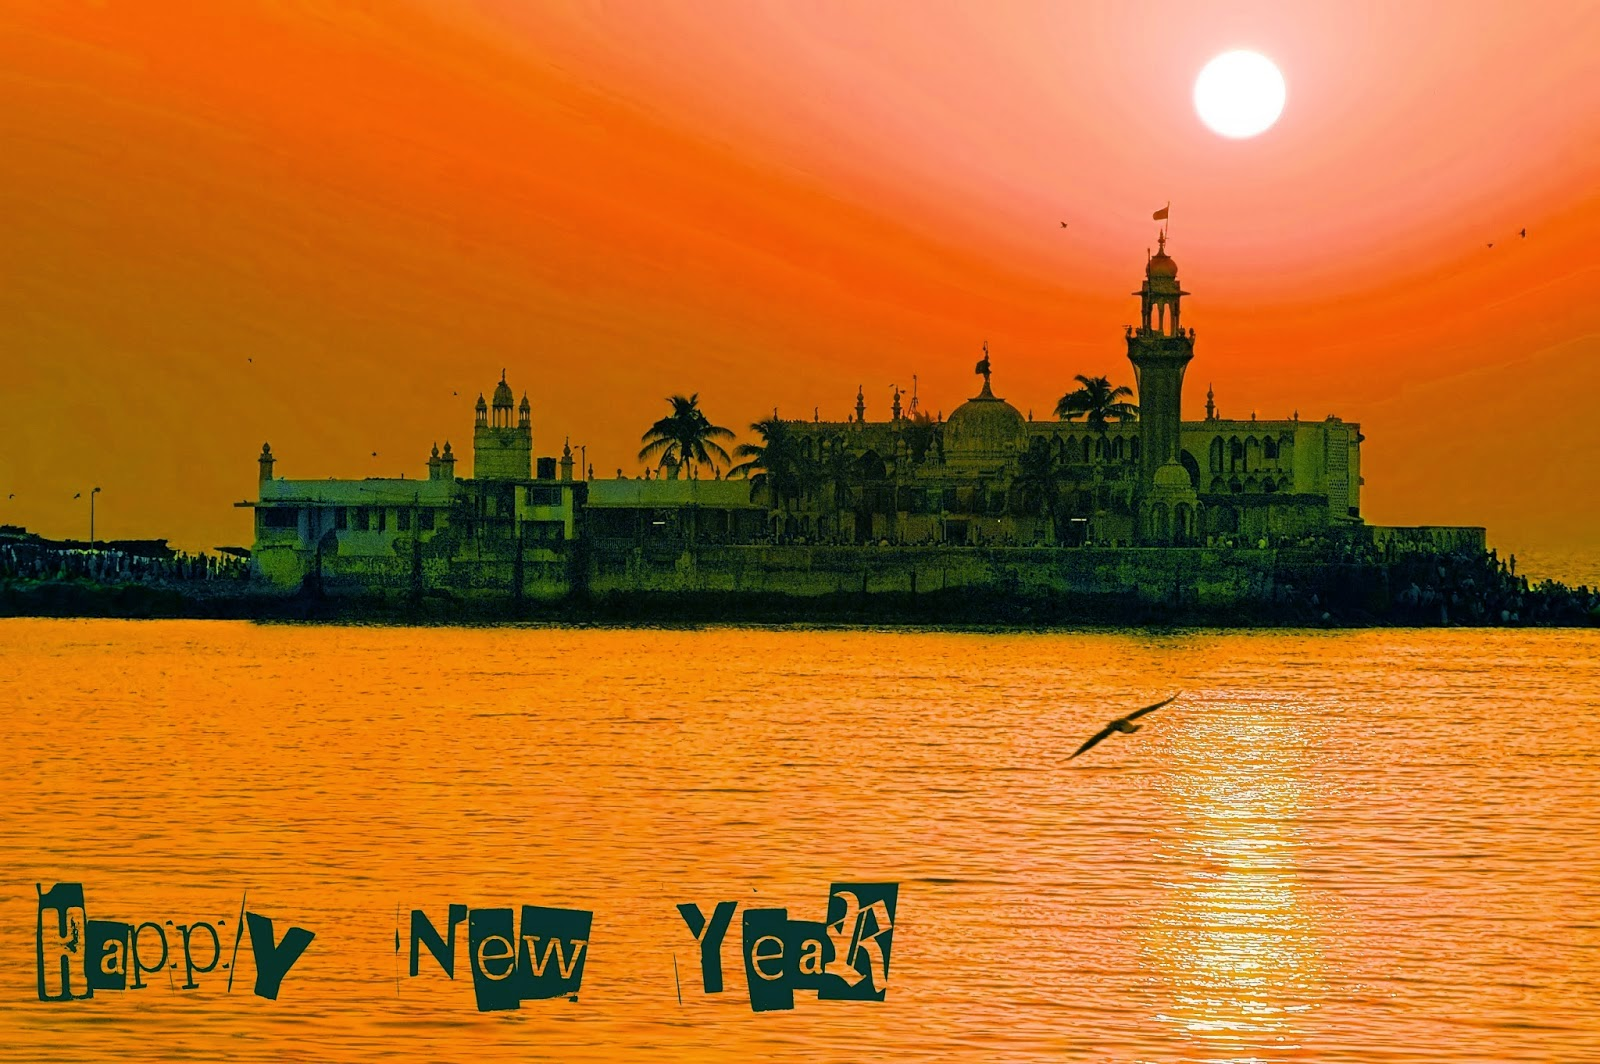 punjabi new year greetings